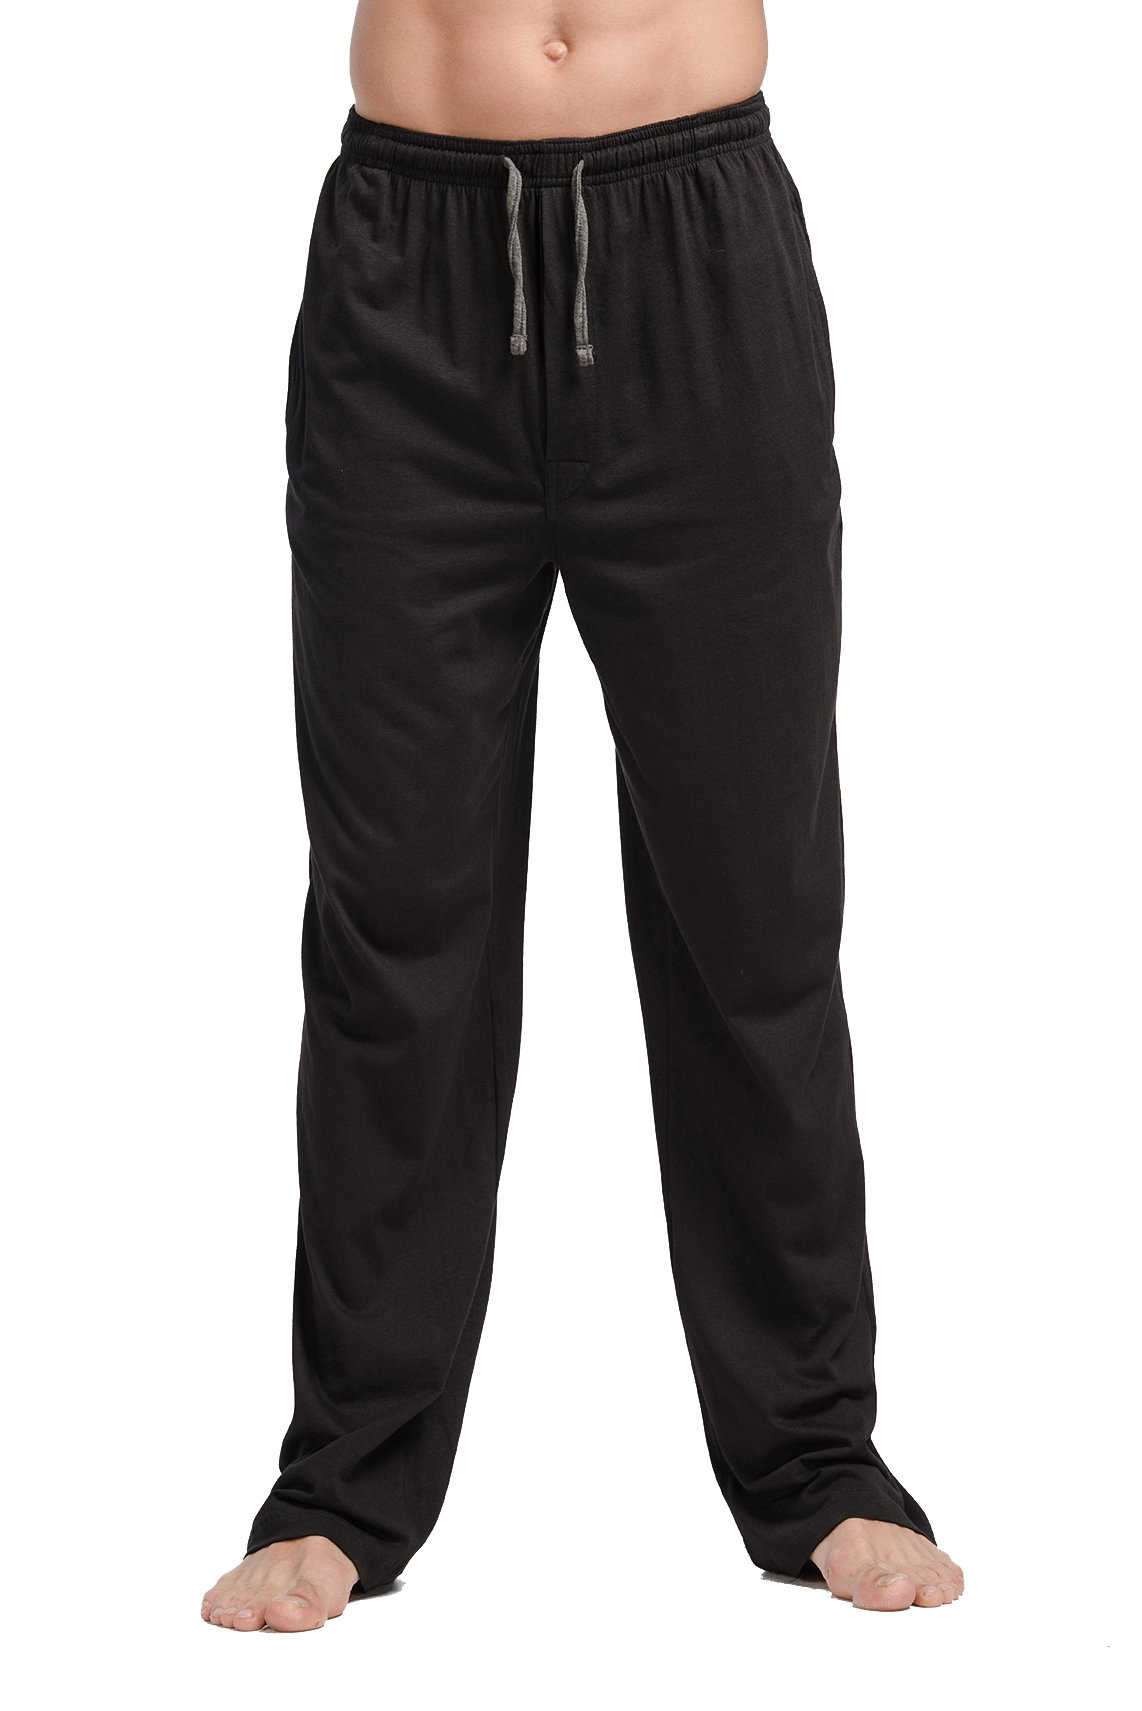 CYZ Men's 100% Cotton Jersey Knit Pajama Pants/Lounge Pants-Black-M